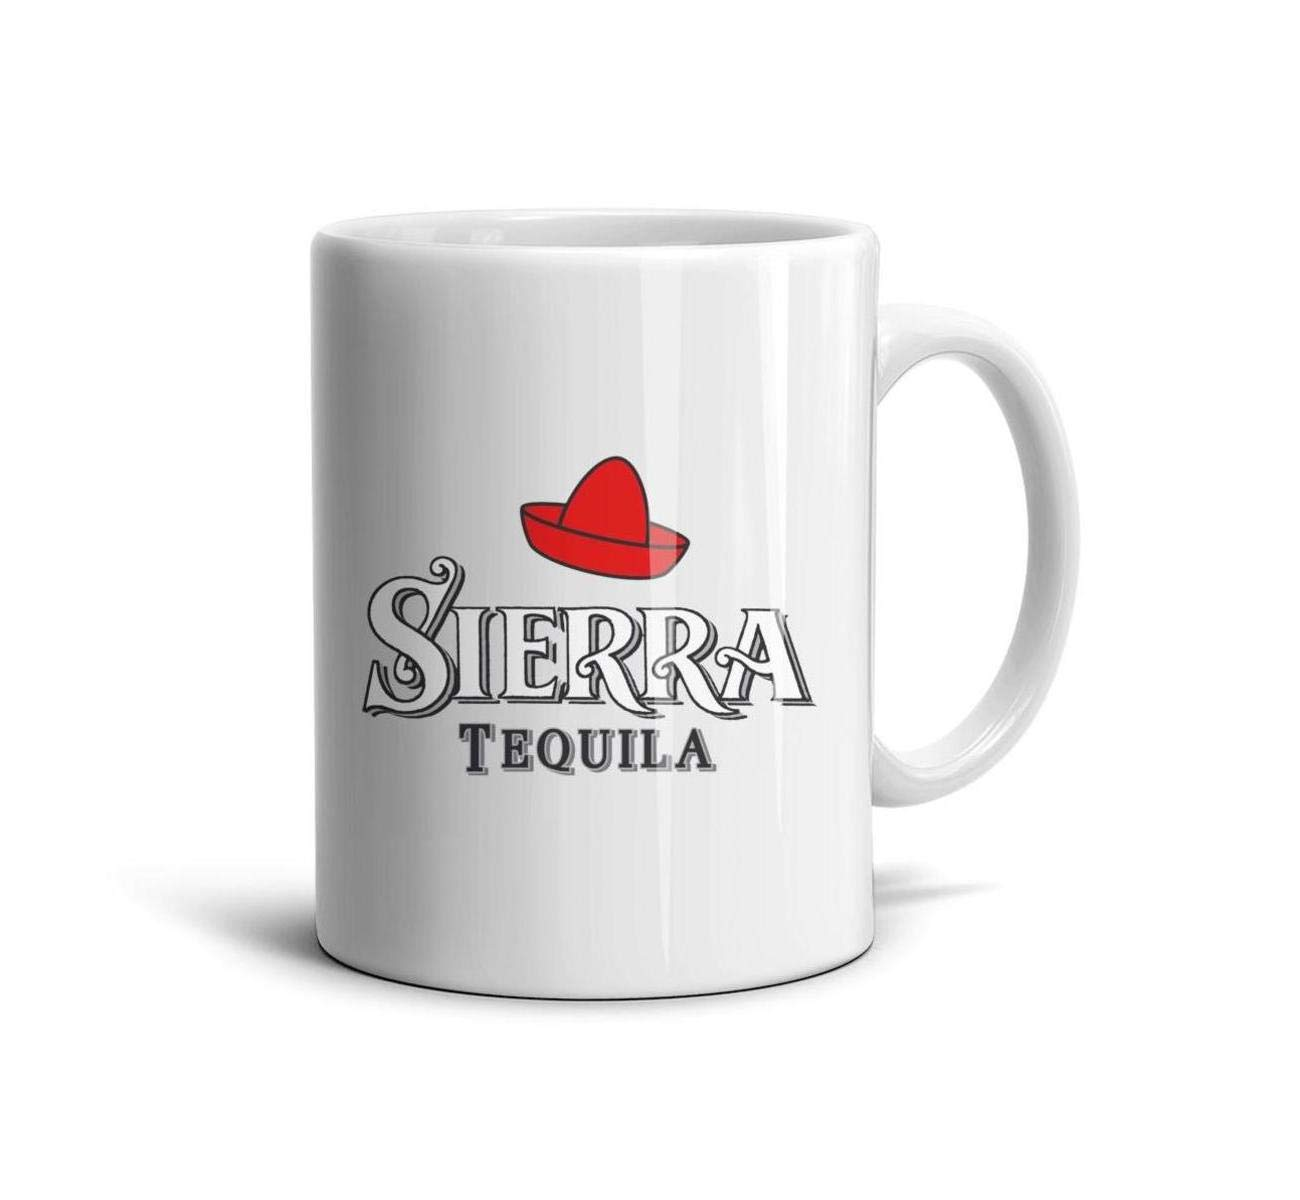 HIYITUTA Sierra-Tequila-Logo Mugs White Fun Mug 11 Oz Holidays Mugs Girlfriend Women